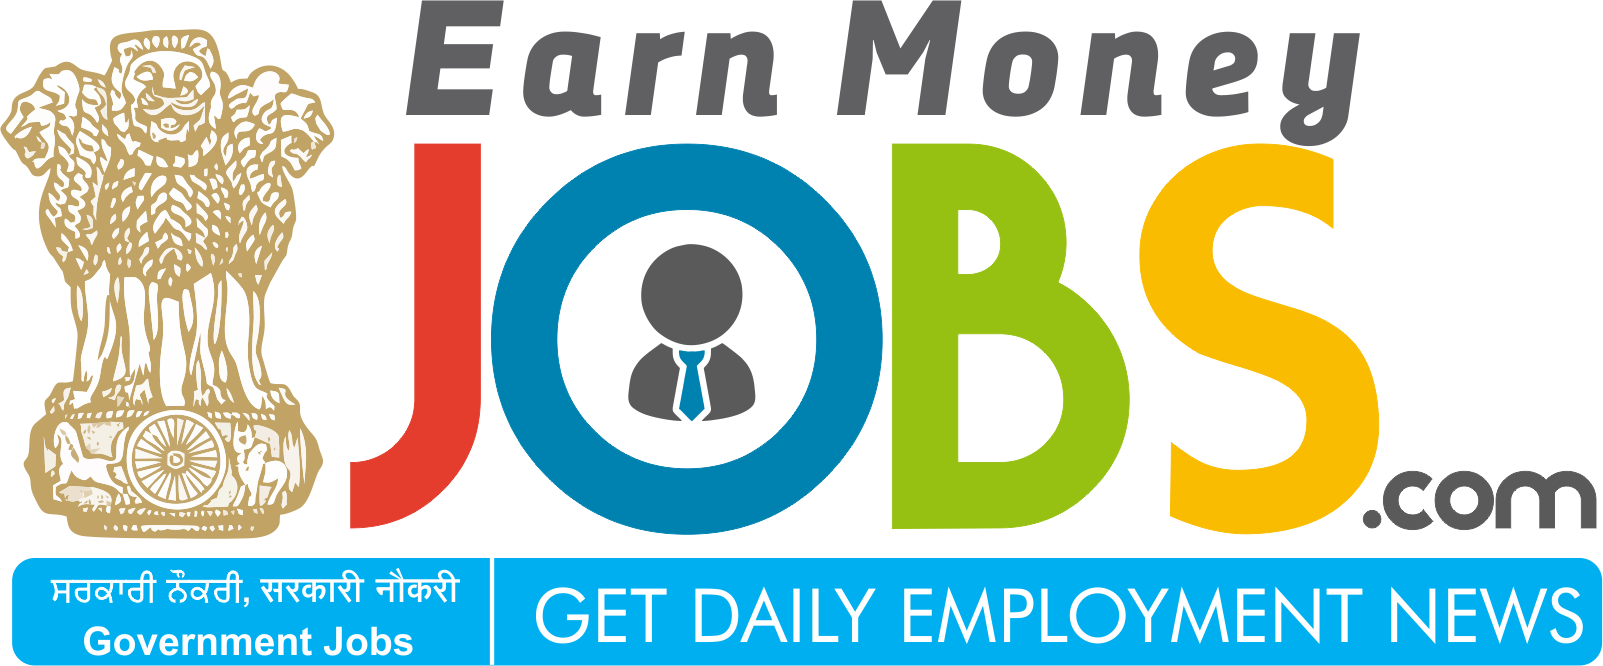 Earnmoneyjobs com